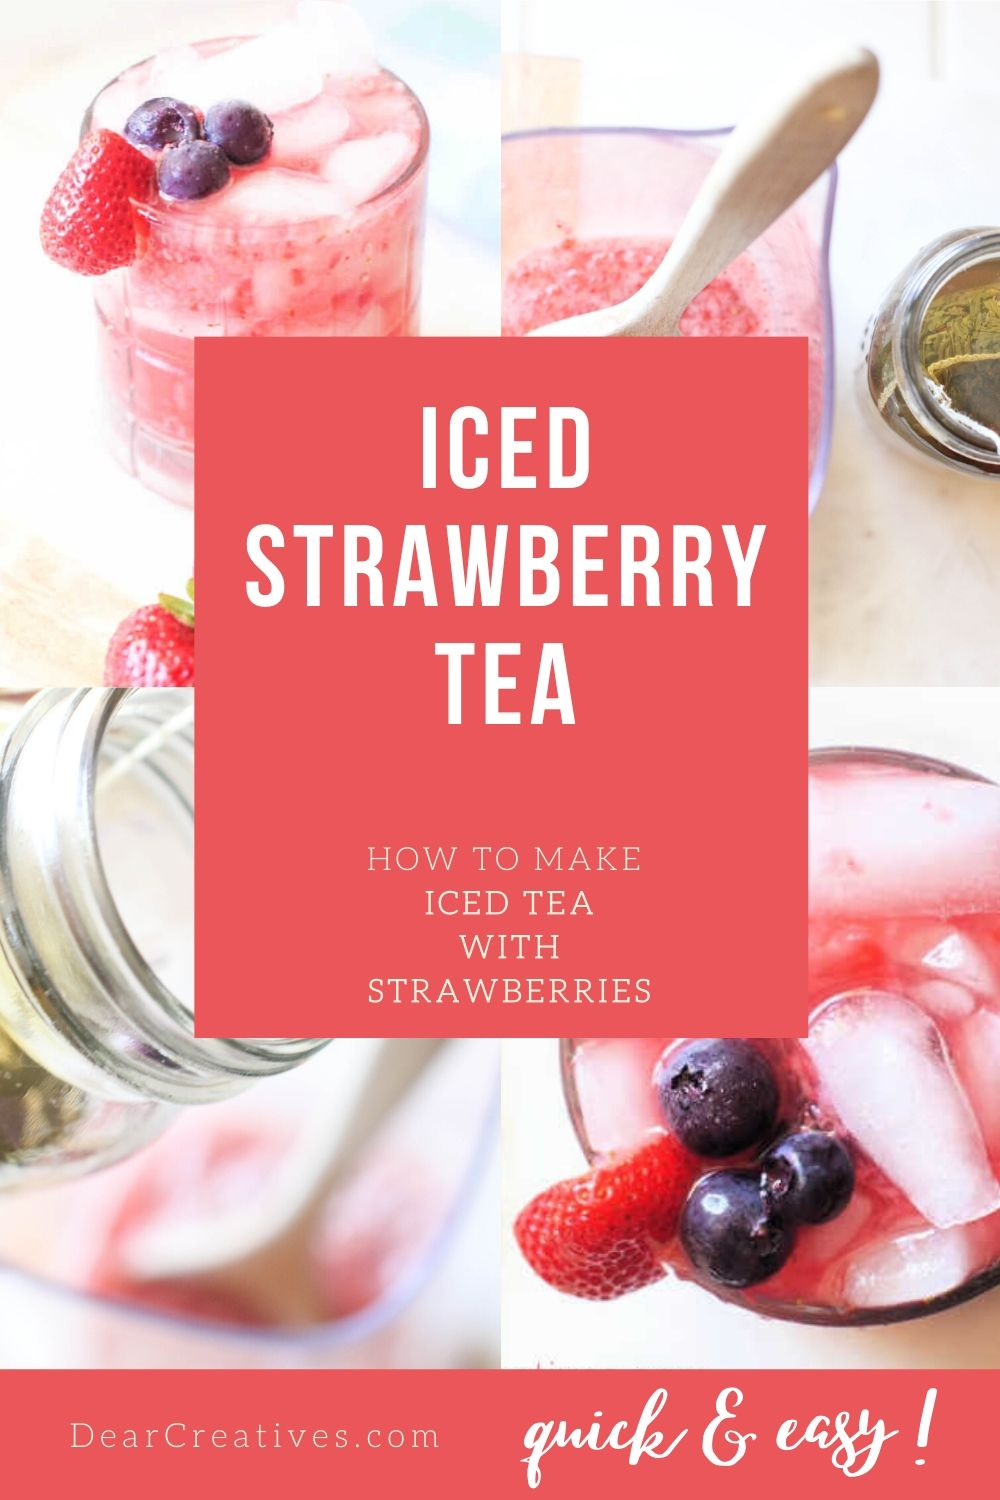 Strawberry Iced Tea  – A Refreshing Strawberry Drink!